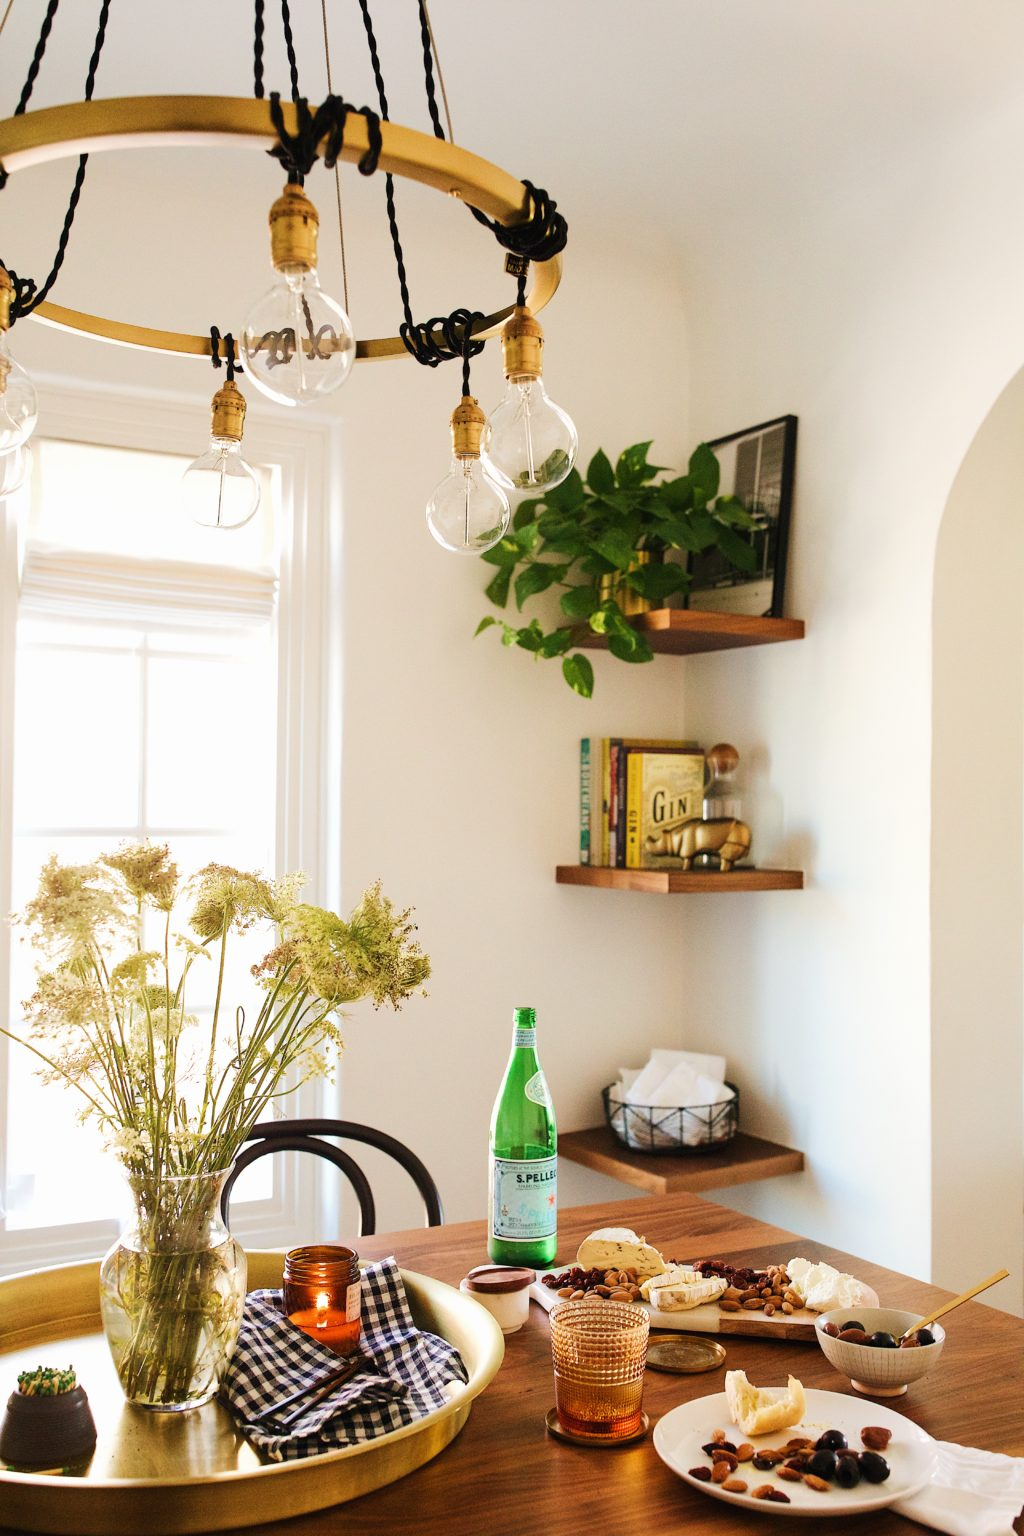 We're Suckers for Small Dining Room Storage Ideas, but These Are Our Absolute Favorites